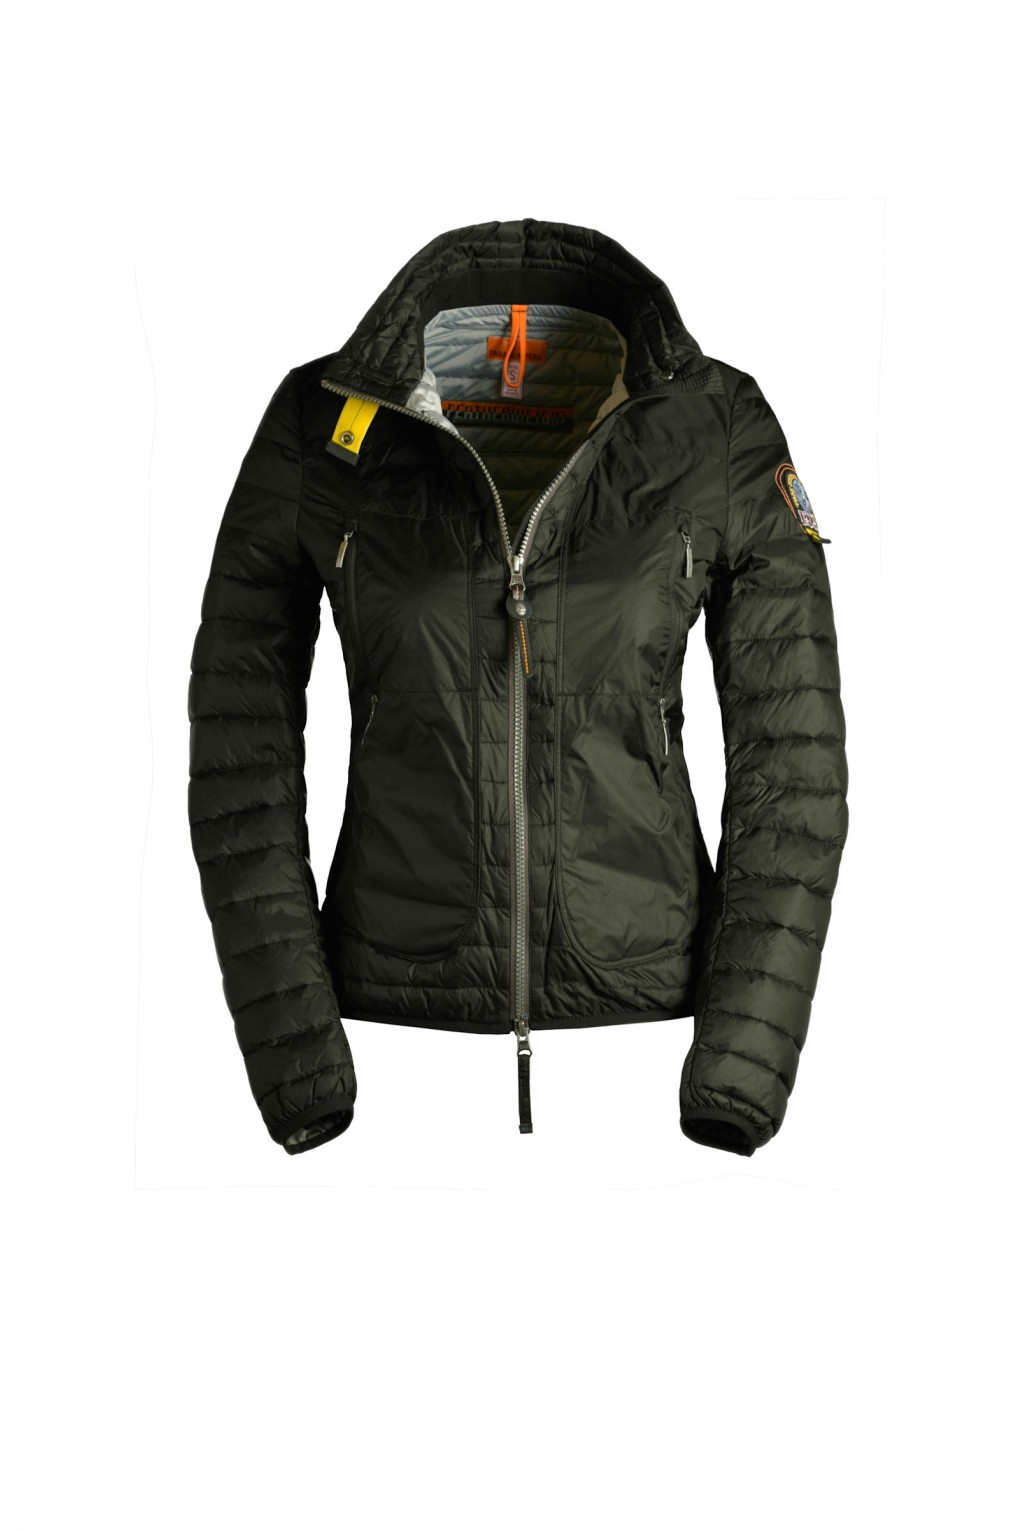 parajumpers GLORIA woman outerwear Army